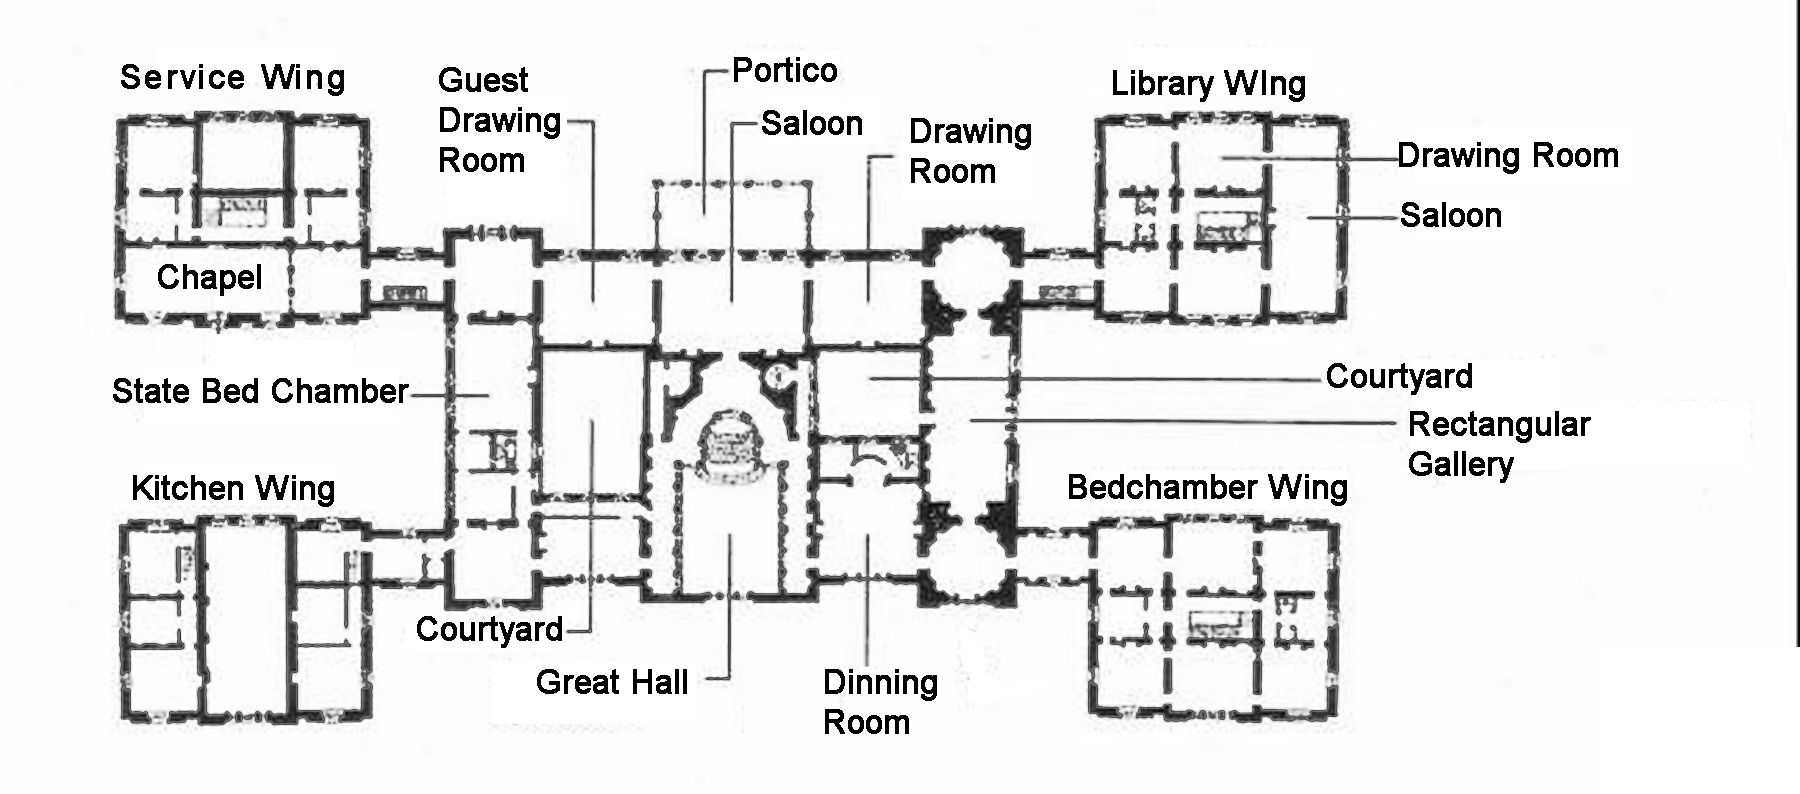 This Is The Floor Plan Of A Single Level Of The Magnificent Holkham Hall Designed By Kent Architectural Floor Plans Floor Plans How To Plan